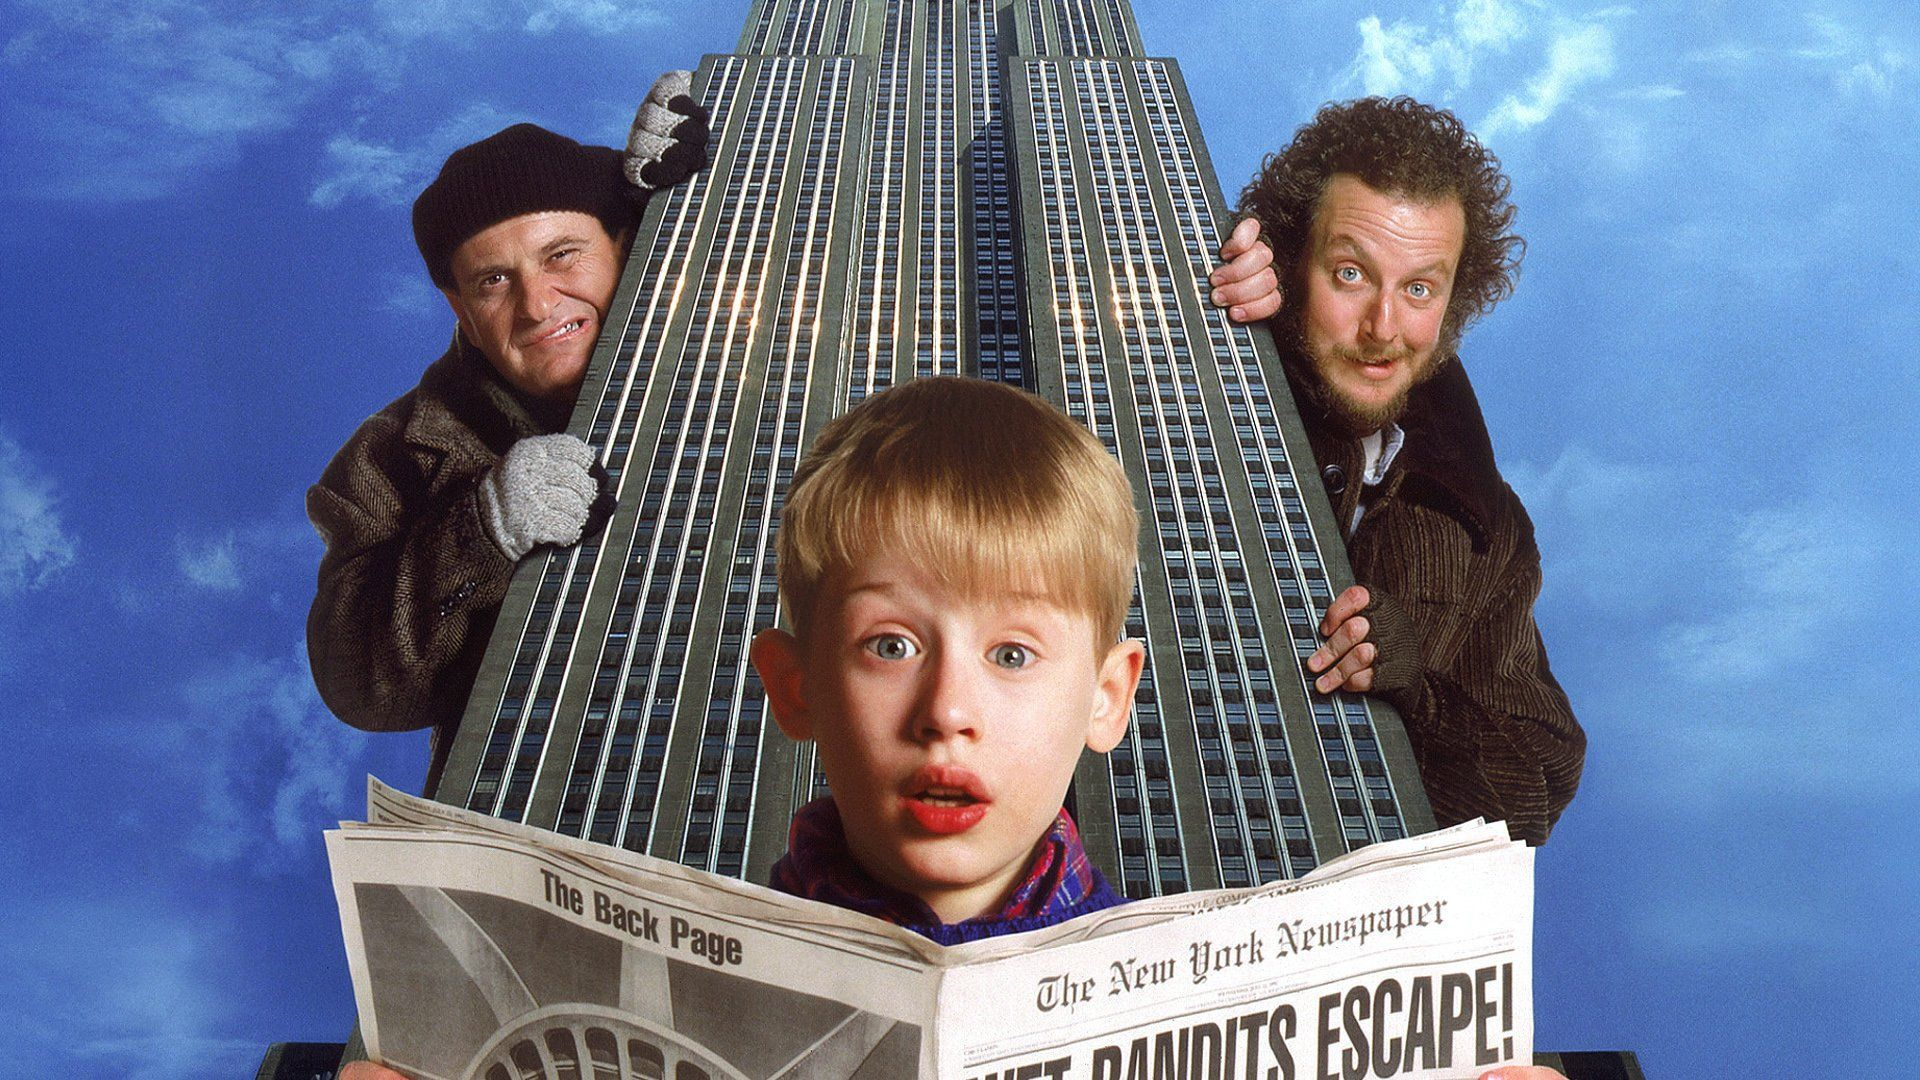 Home Alone Wallpapers - Top Free Home Alone Backgrounds